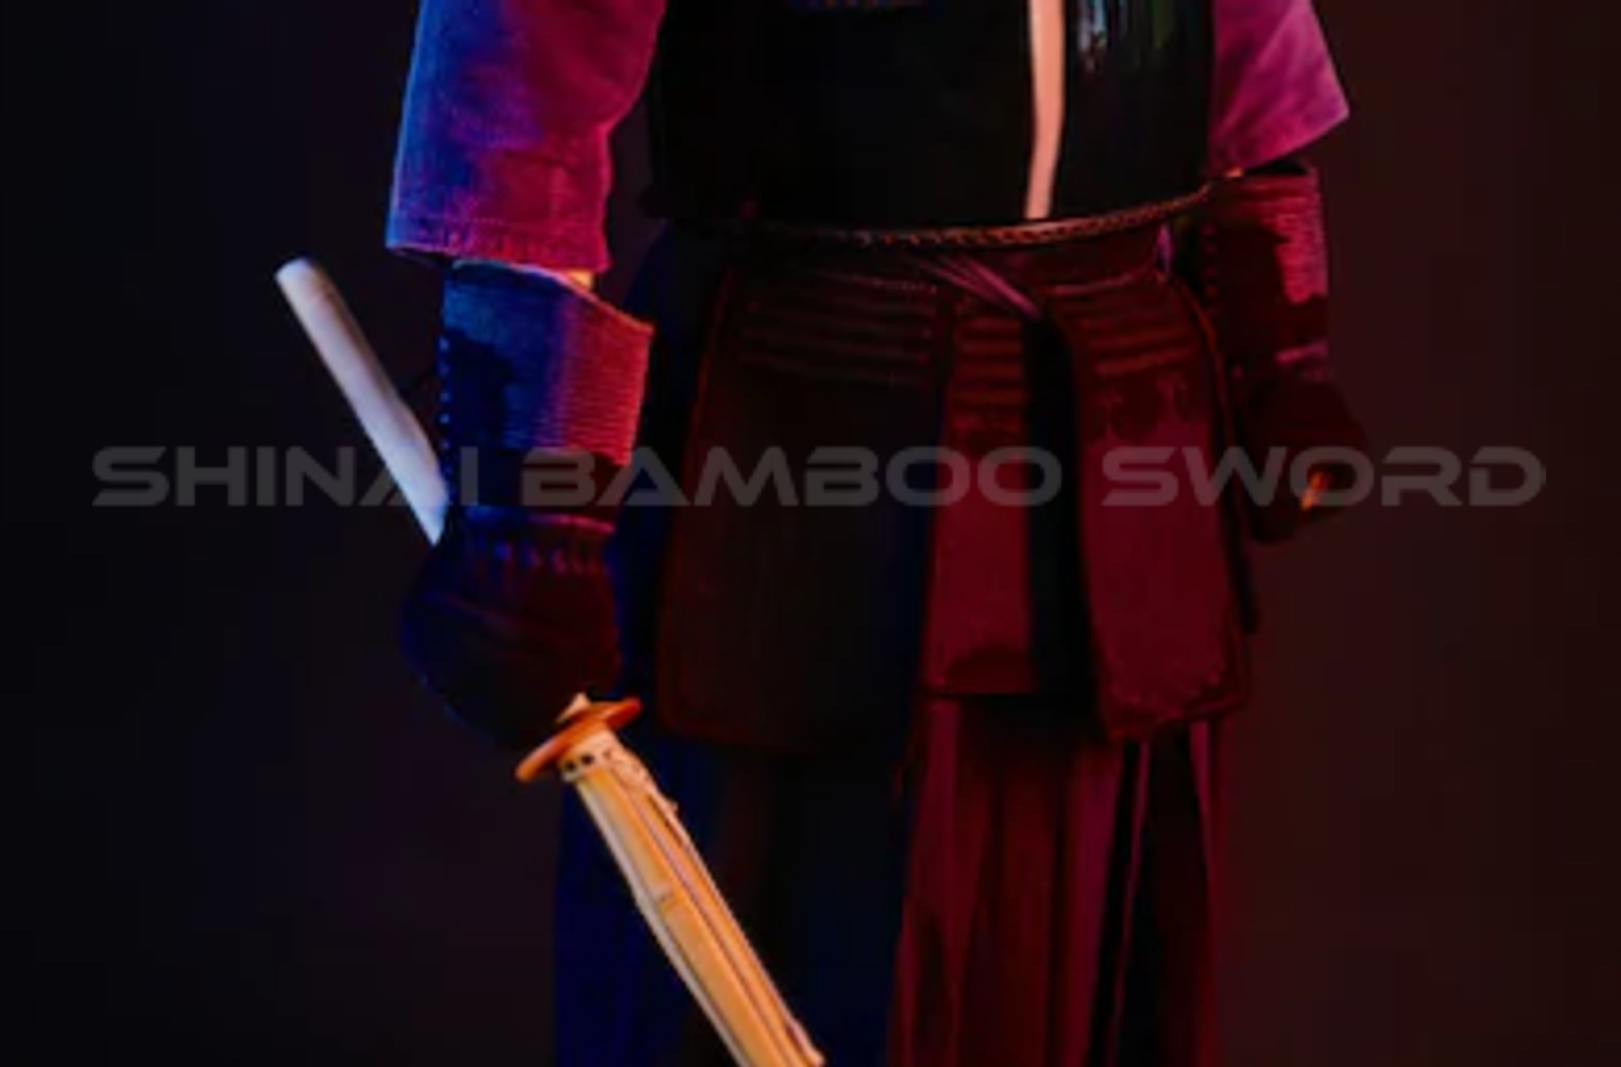 Shinai Bamboo Sword